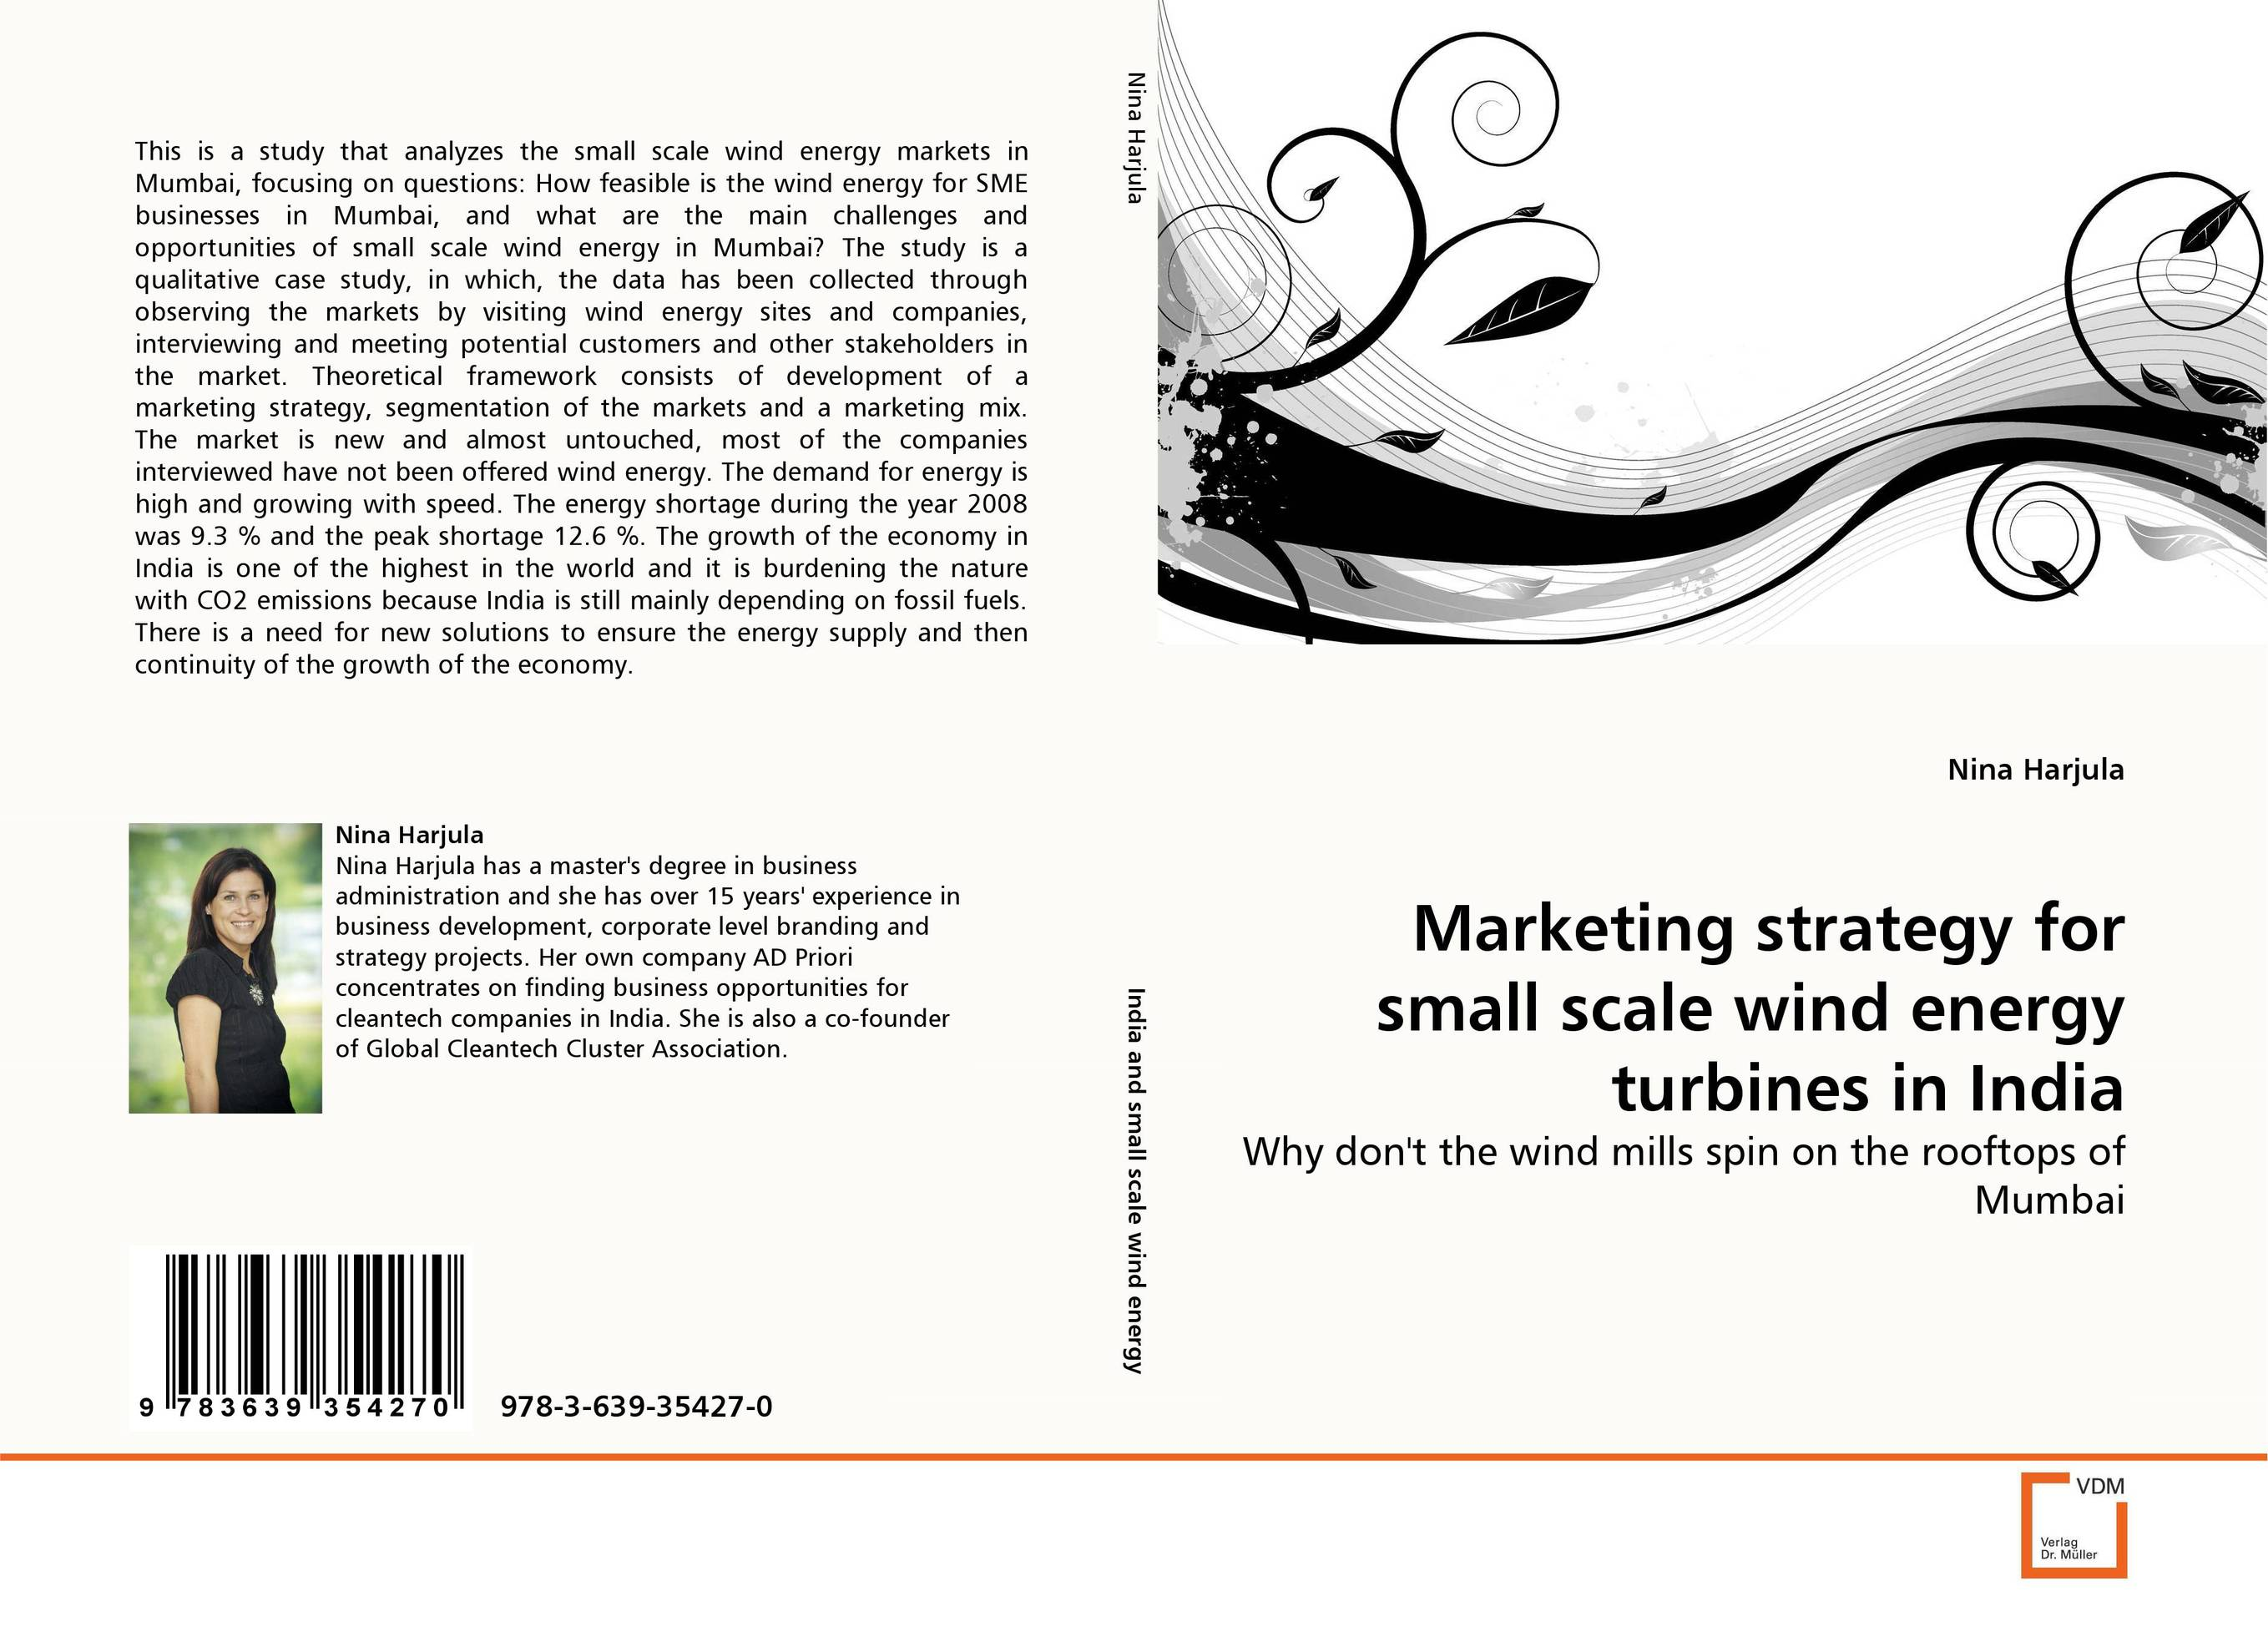 Marketing strategy for small scale wind energy turbines in India impact of wind energy on reactive power and voltage control